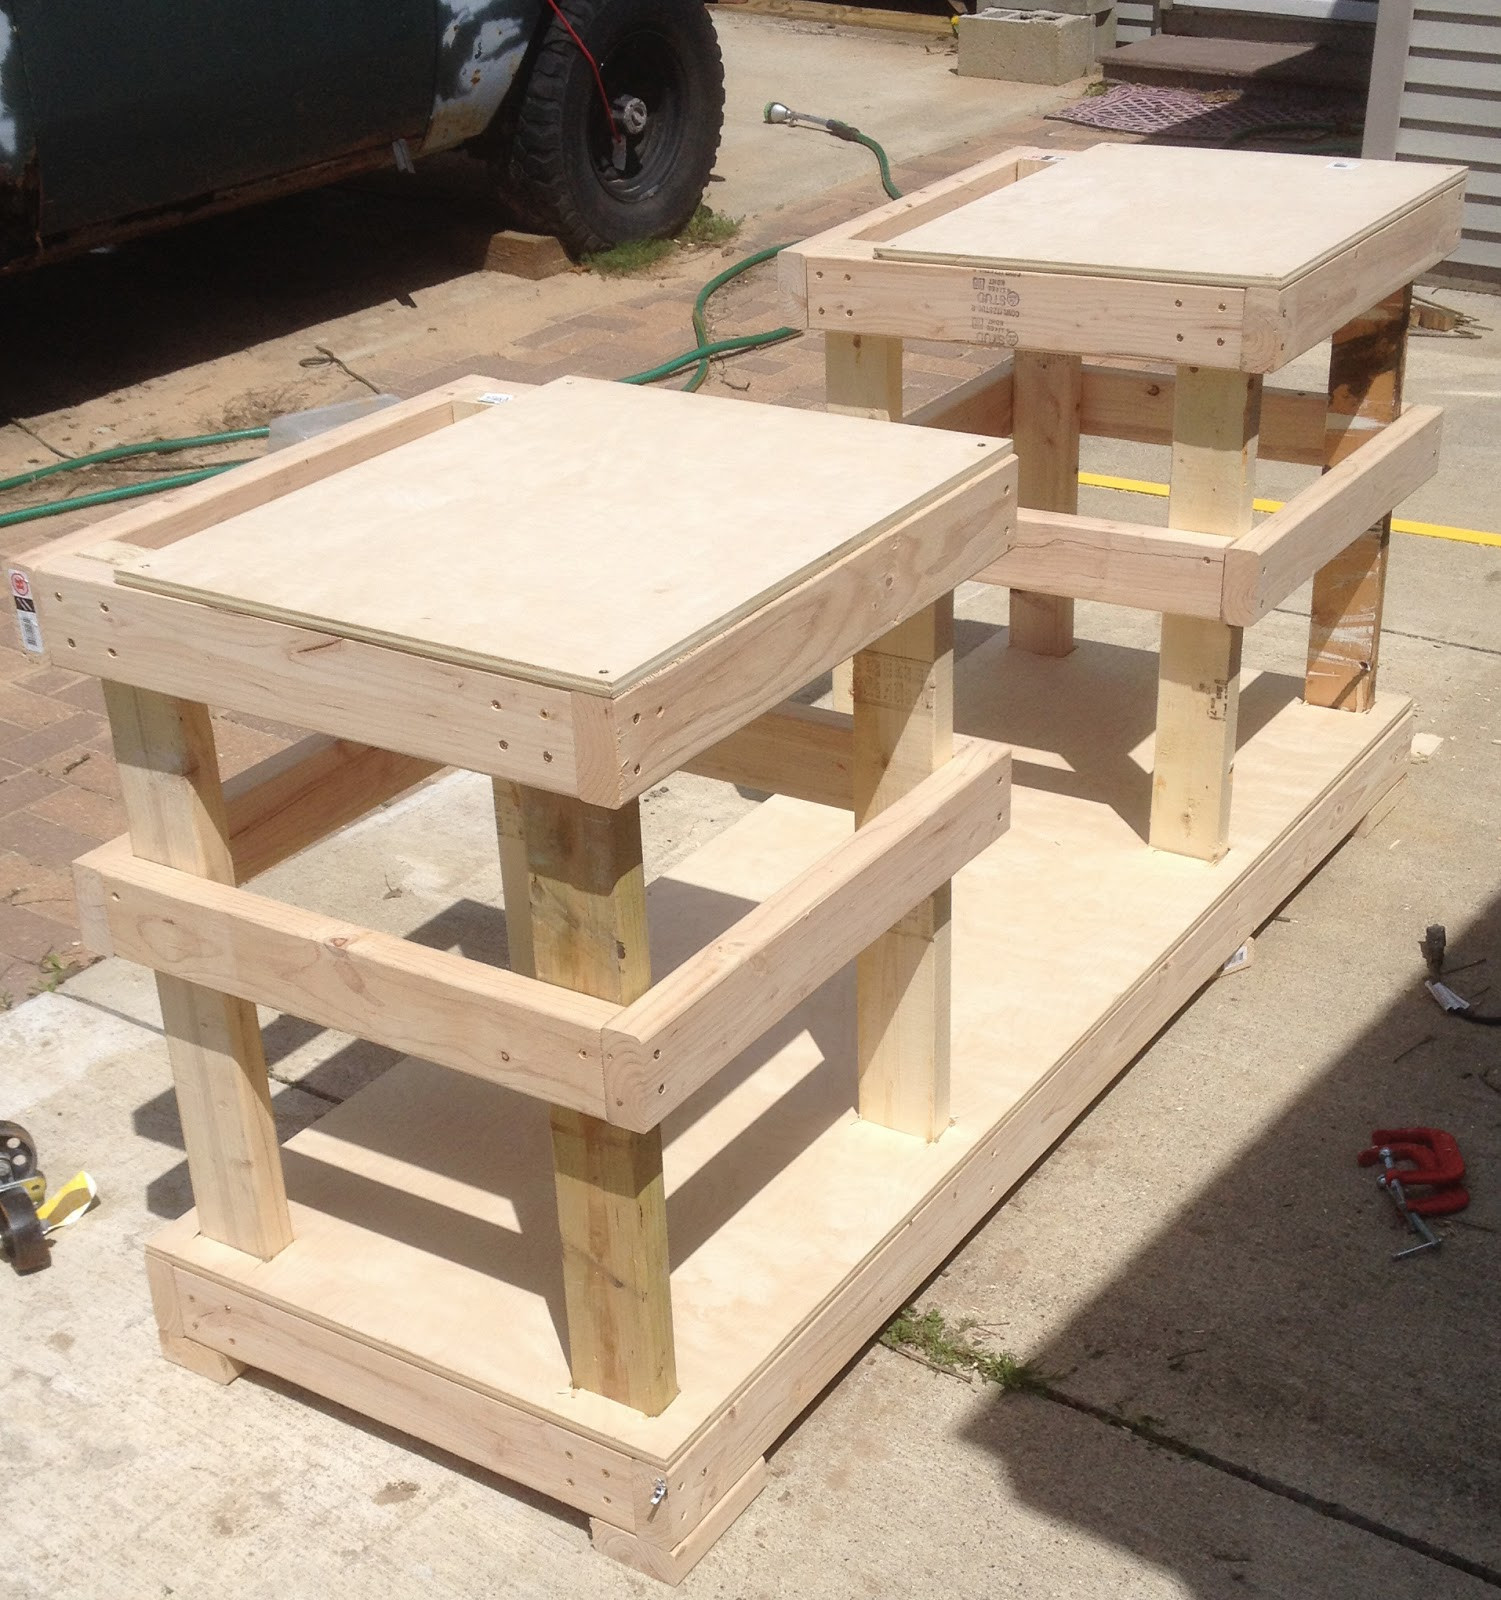 Best ideas about Table Saw Stand DIY . Save or Pin DIY Table Saw Stand on Casters Now.